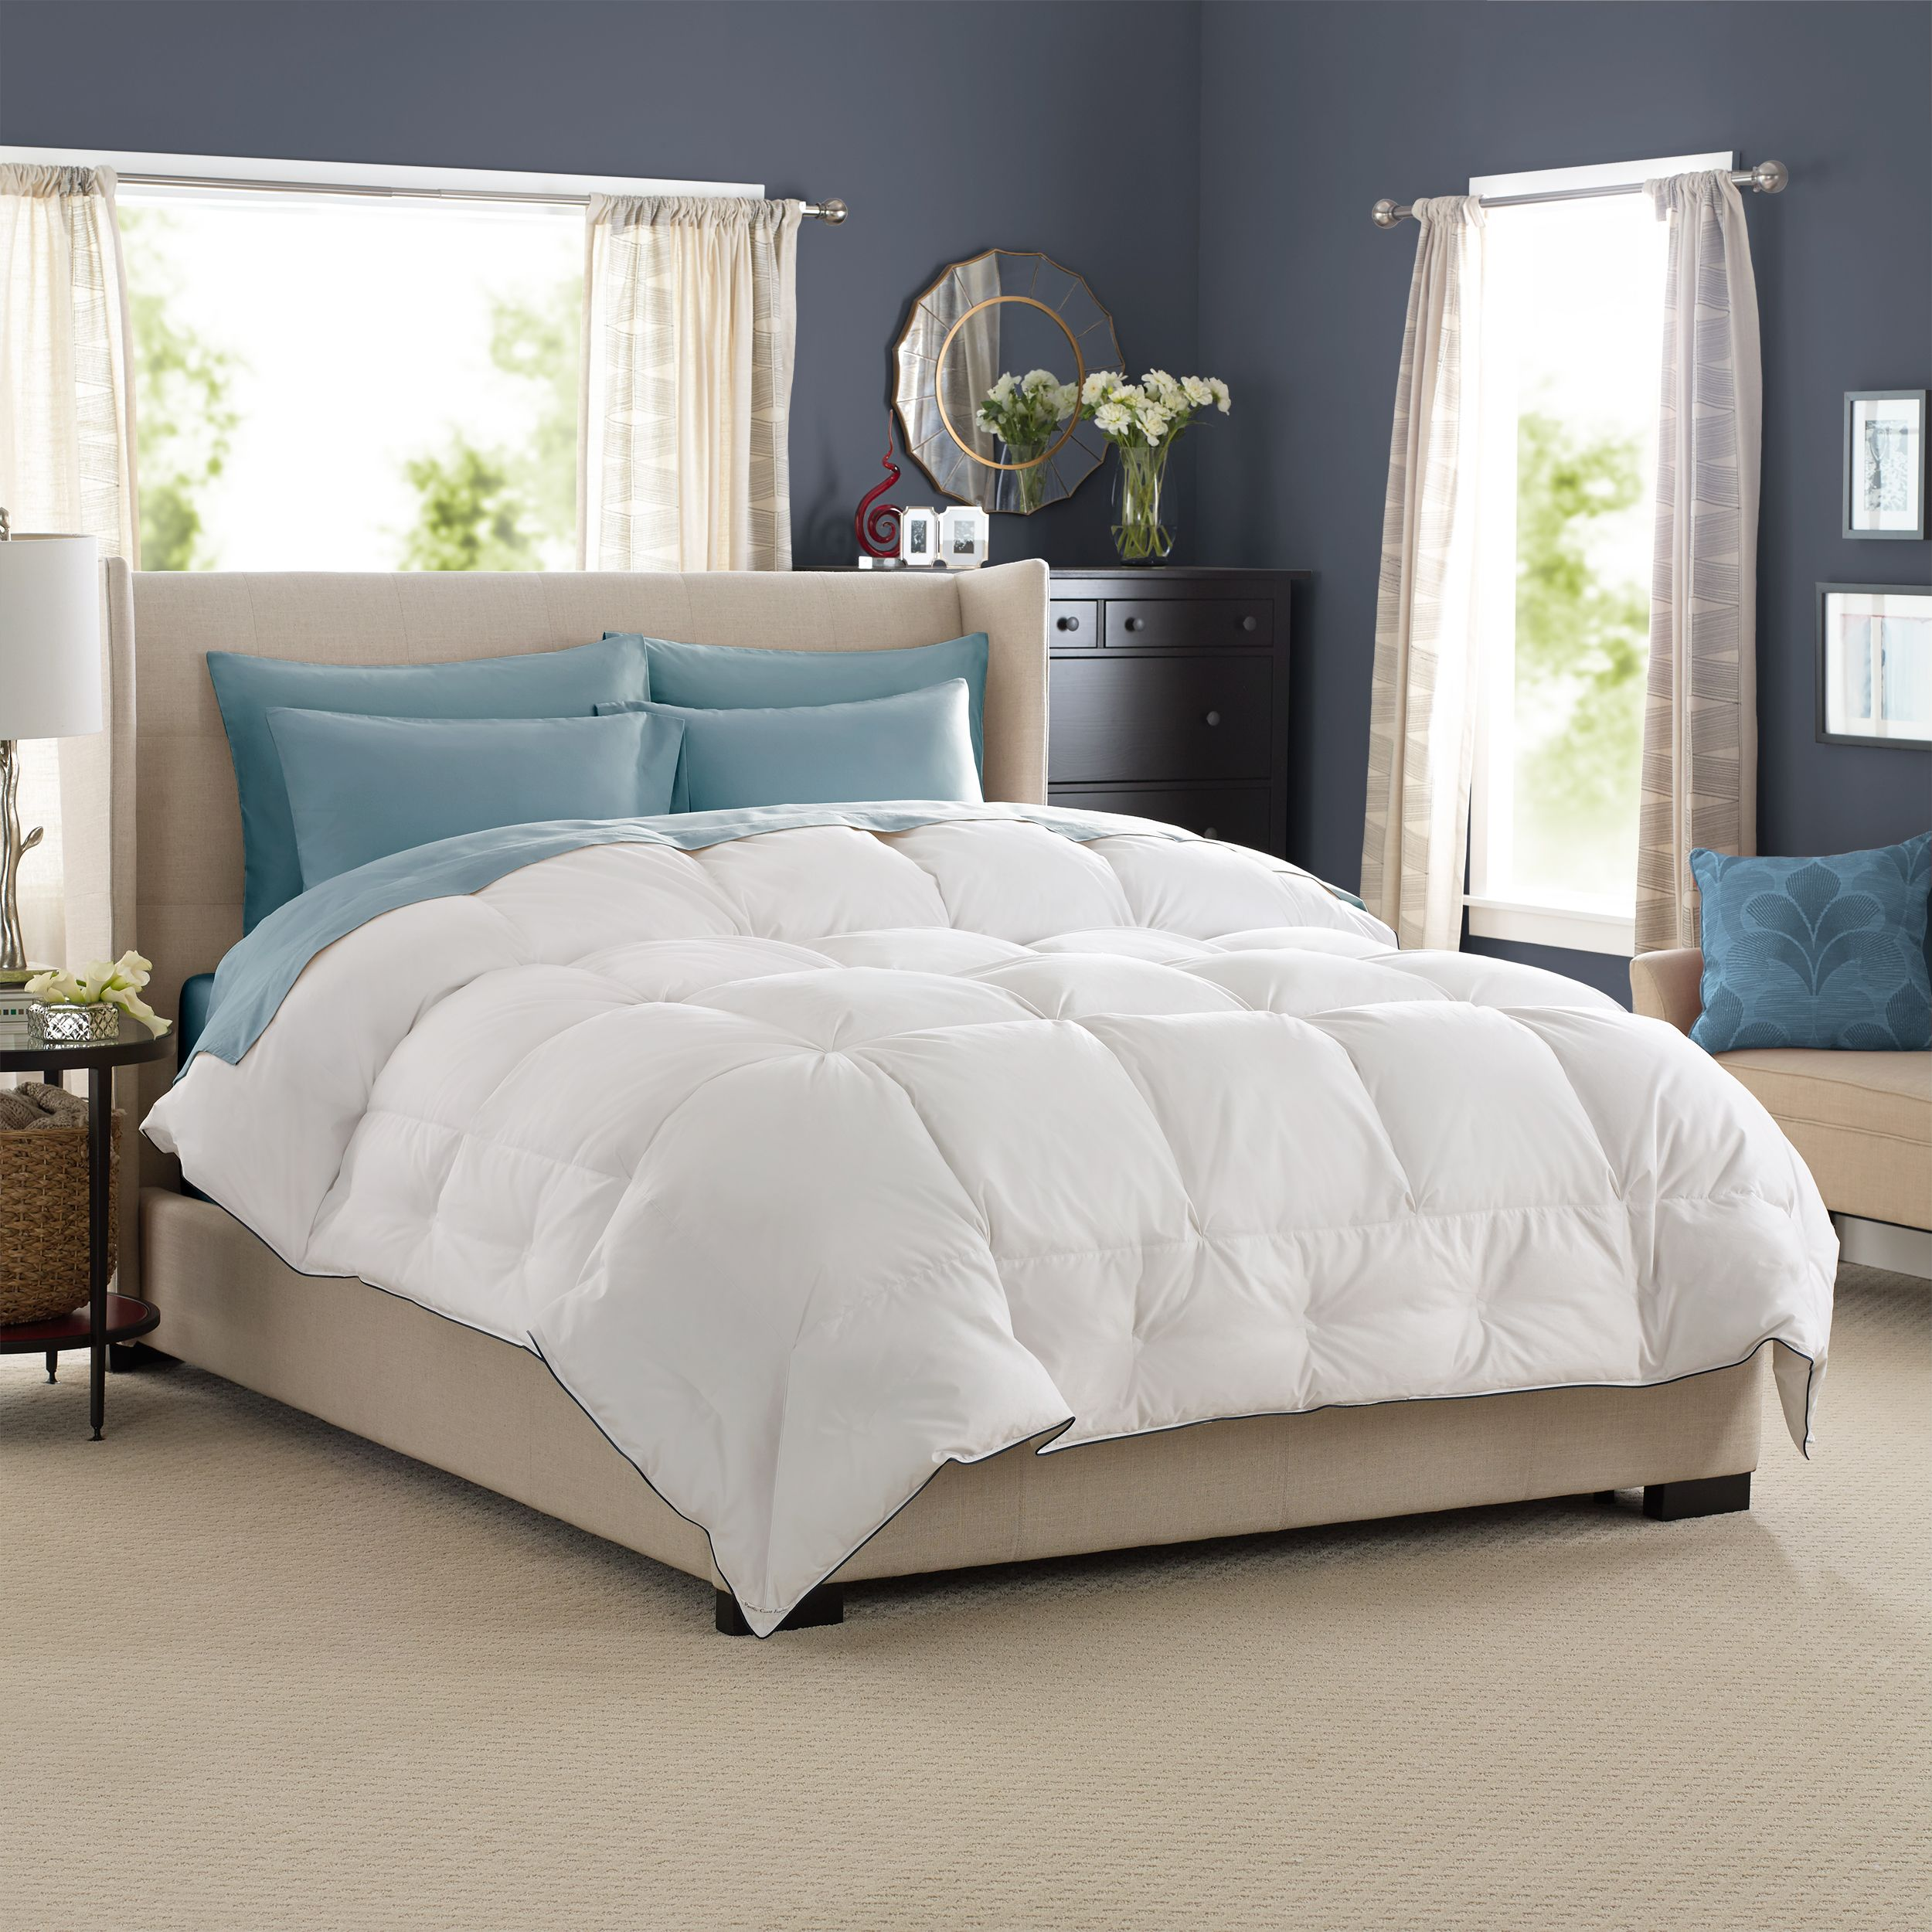 Why Pacific Coast is Best at Down Comforters Pacific